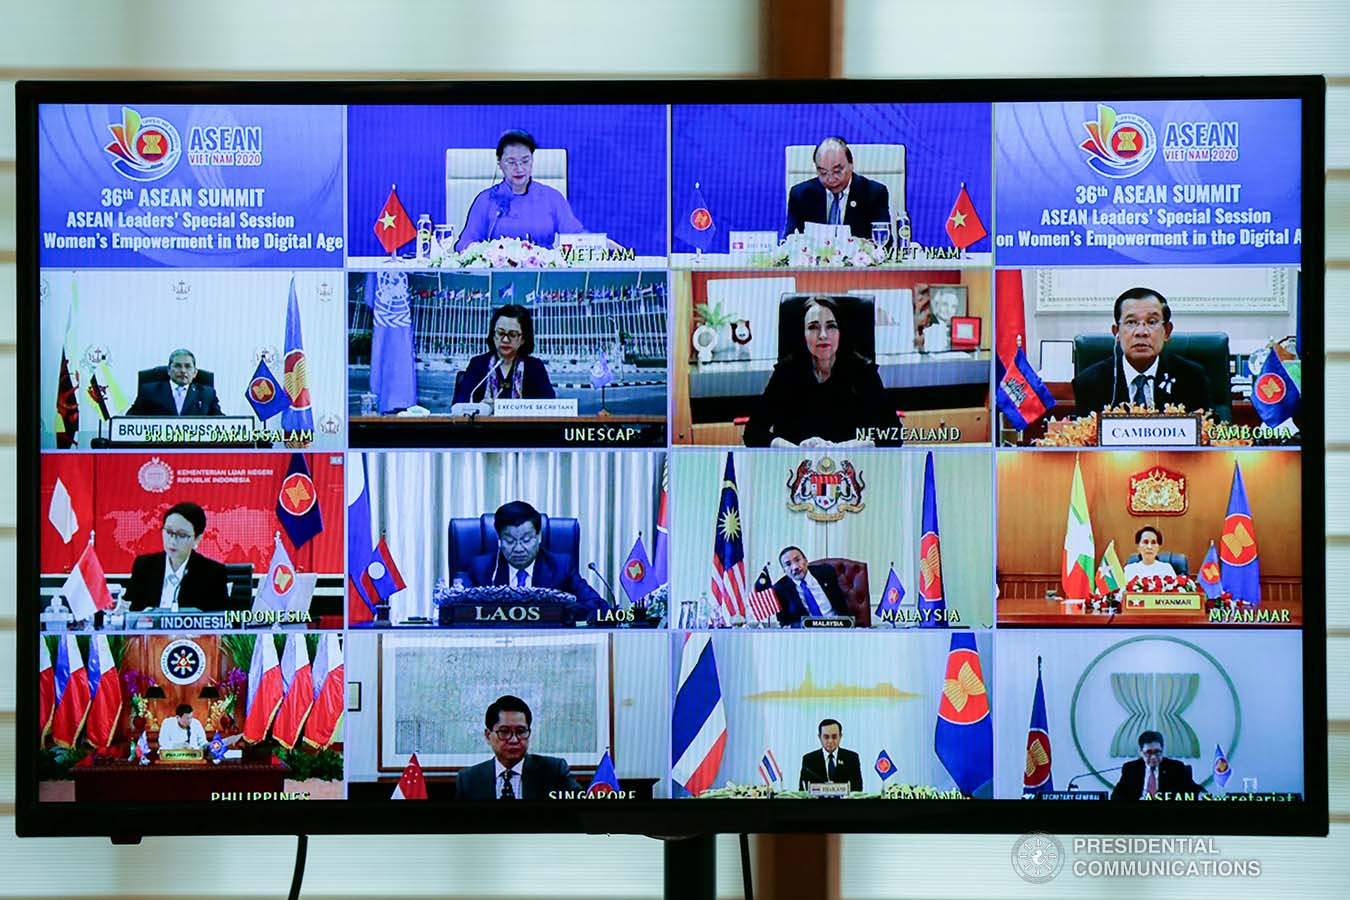 President Rodrigo Roa Duterte joins other leaders from the Association of Southeast Asian Nations (ASEAN) member countries during the 36th ASEAN Summit video conference at the Malago Clubhouse in Malacañang on June 26, 2020. SIMEON CELI JR./PRESIDENTIAL PHOTOS